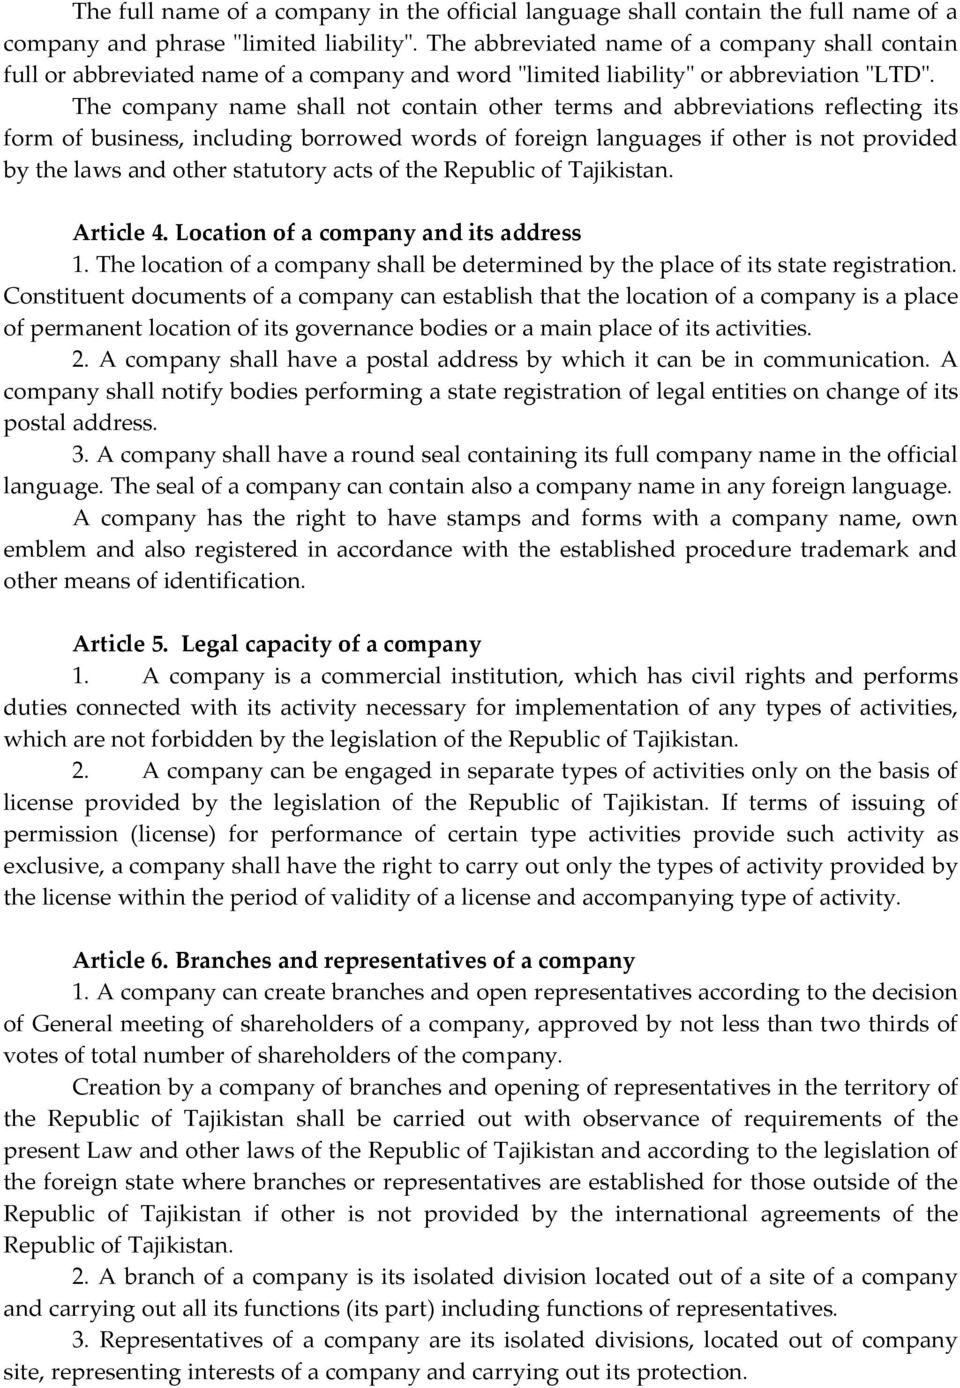 The company name shall not contain other terms and abbreviations reflecting its form of business, including borrowed words of foreign languages if other is not provided by the laws and other